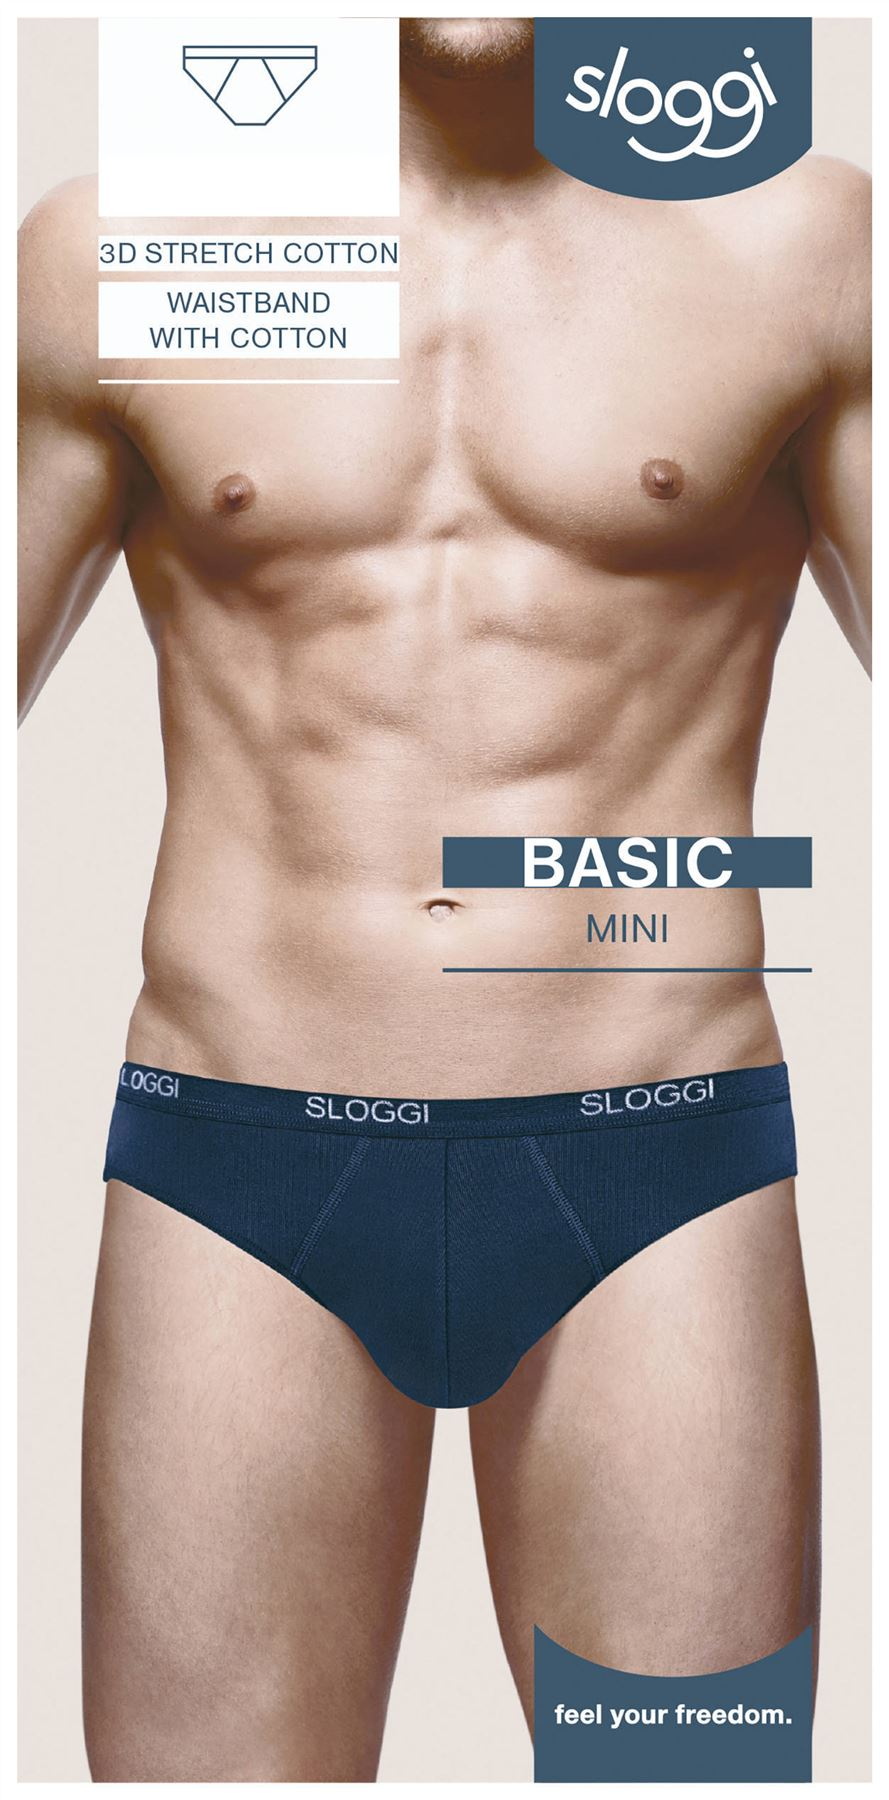 Sloggi-Basic-Mini-Brief-For-Men-Black-White-Grey-Navy miniatuur 6